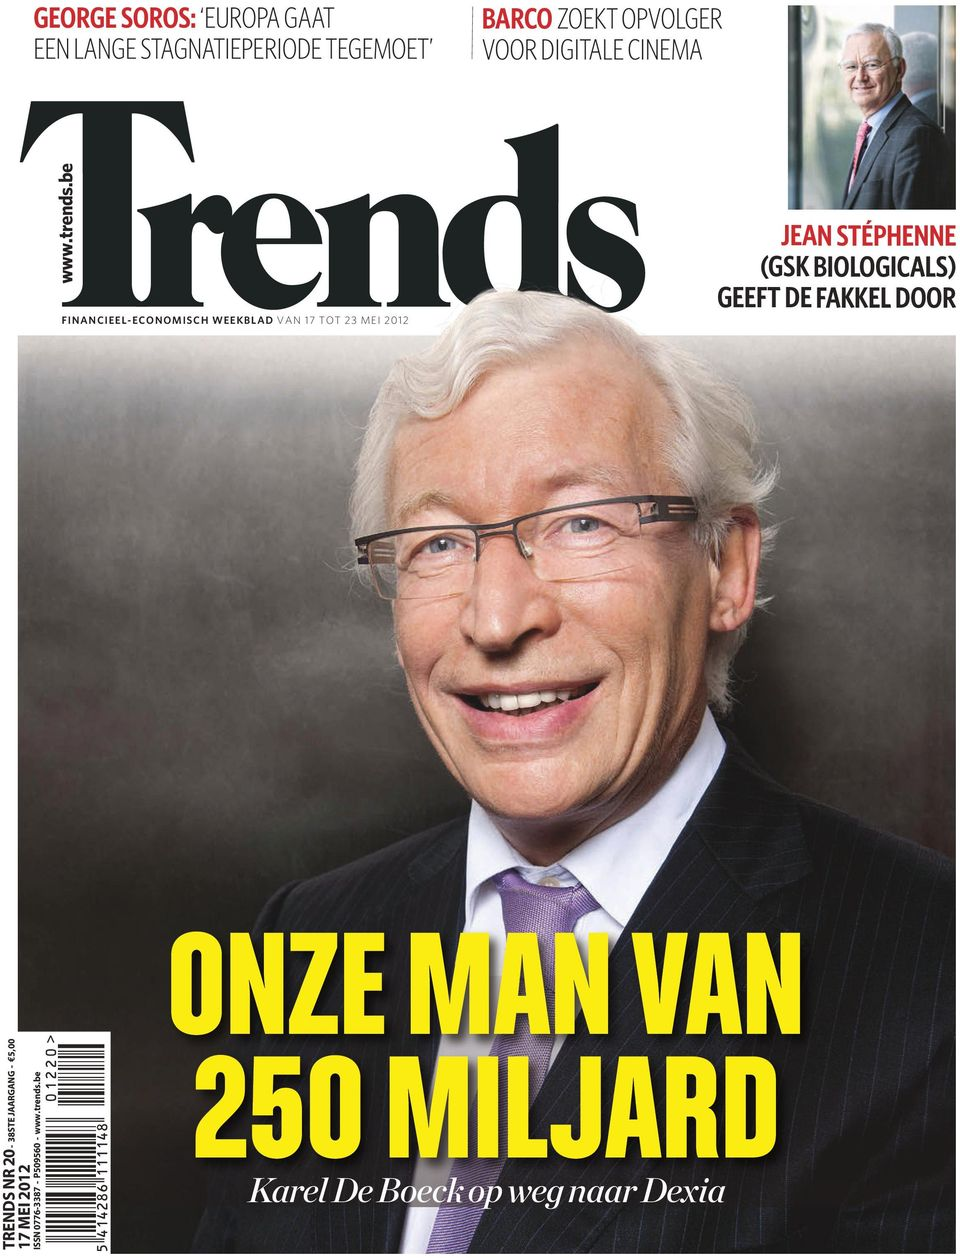 be FINANCIEEL-ECONOMISCH WEEKBLAD VAN 17 TOT 23 MEI 2012 JEAN STÉPHENNE (GSK BIOLOGICALS)